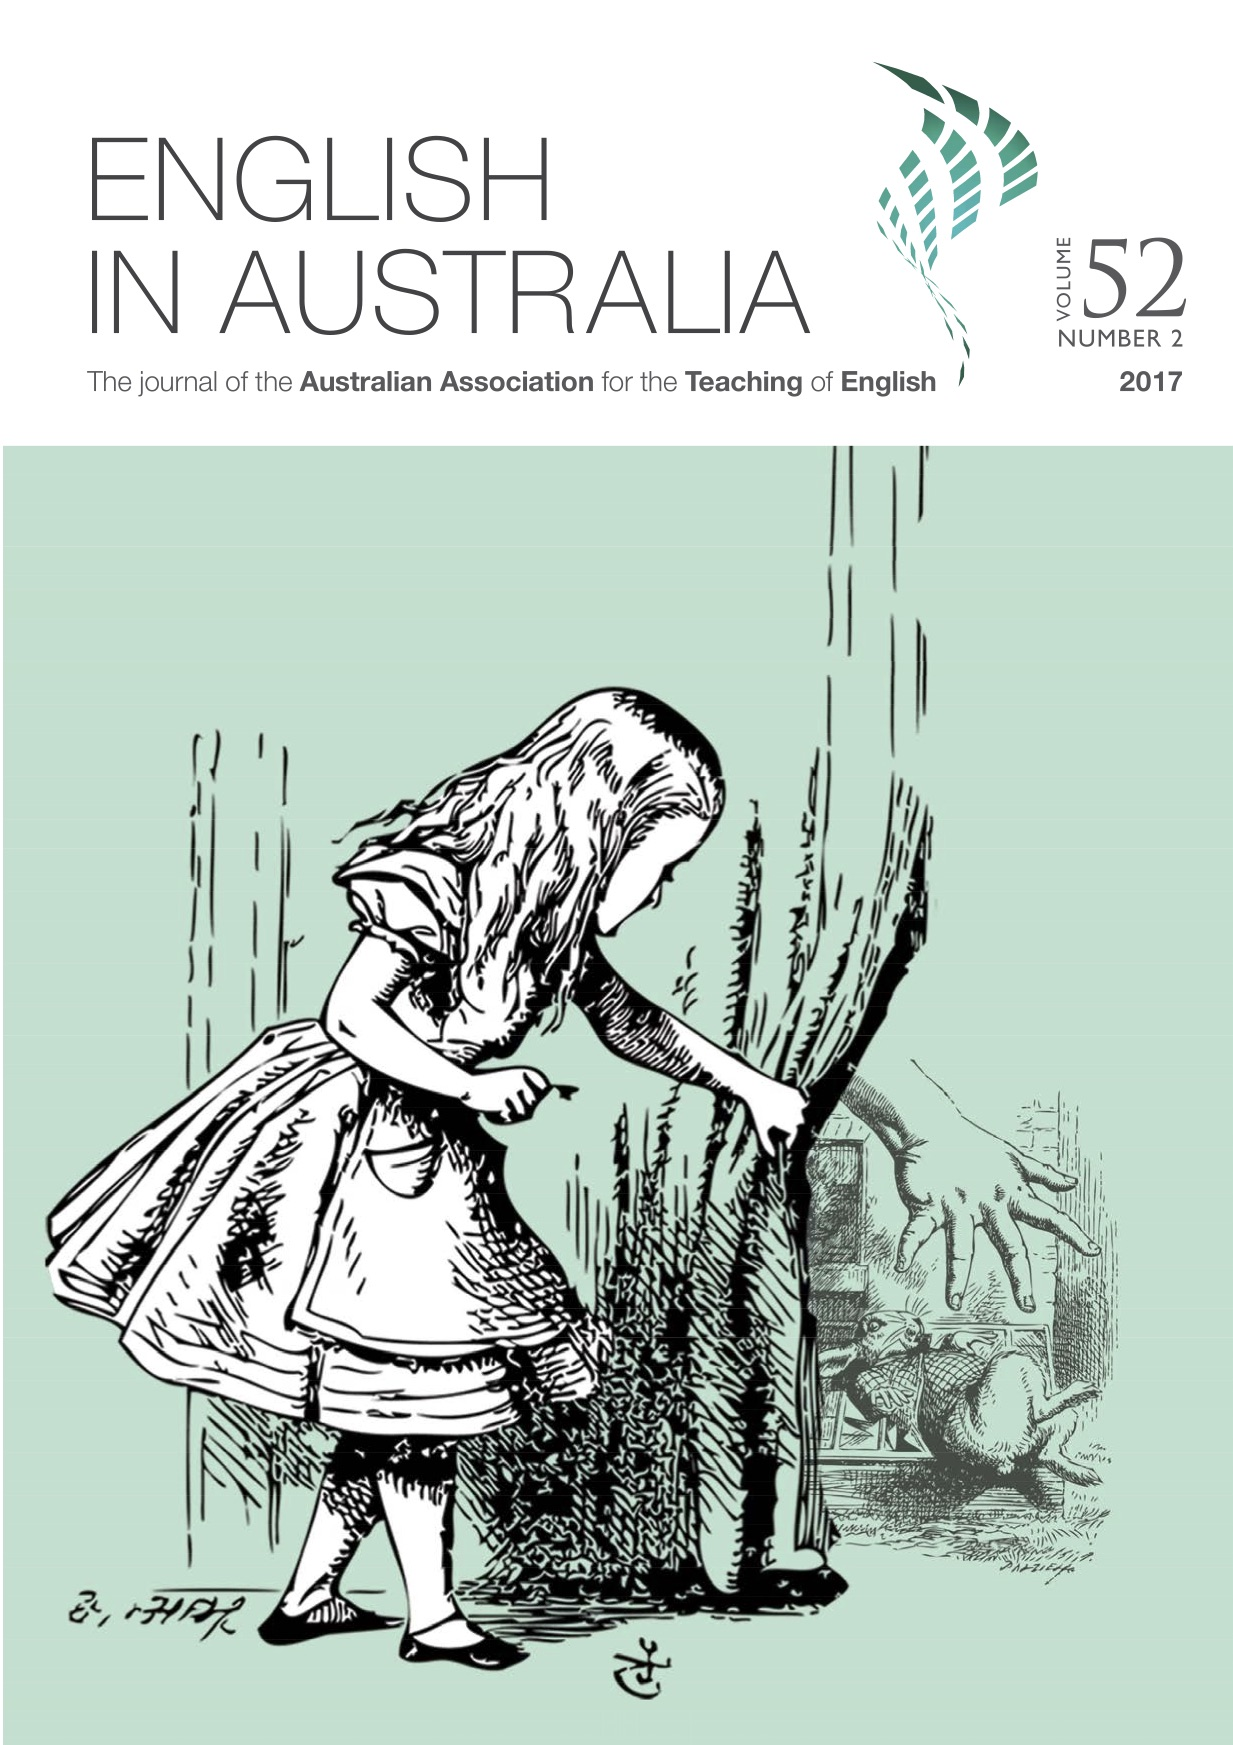 English in Australia Vol 52 No 2 2017